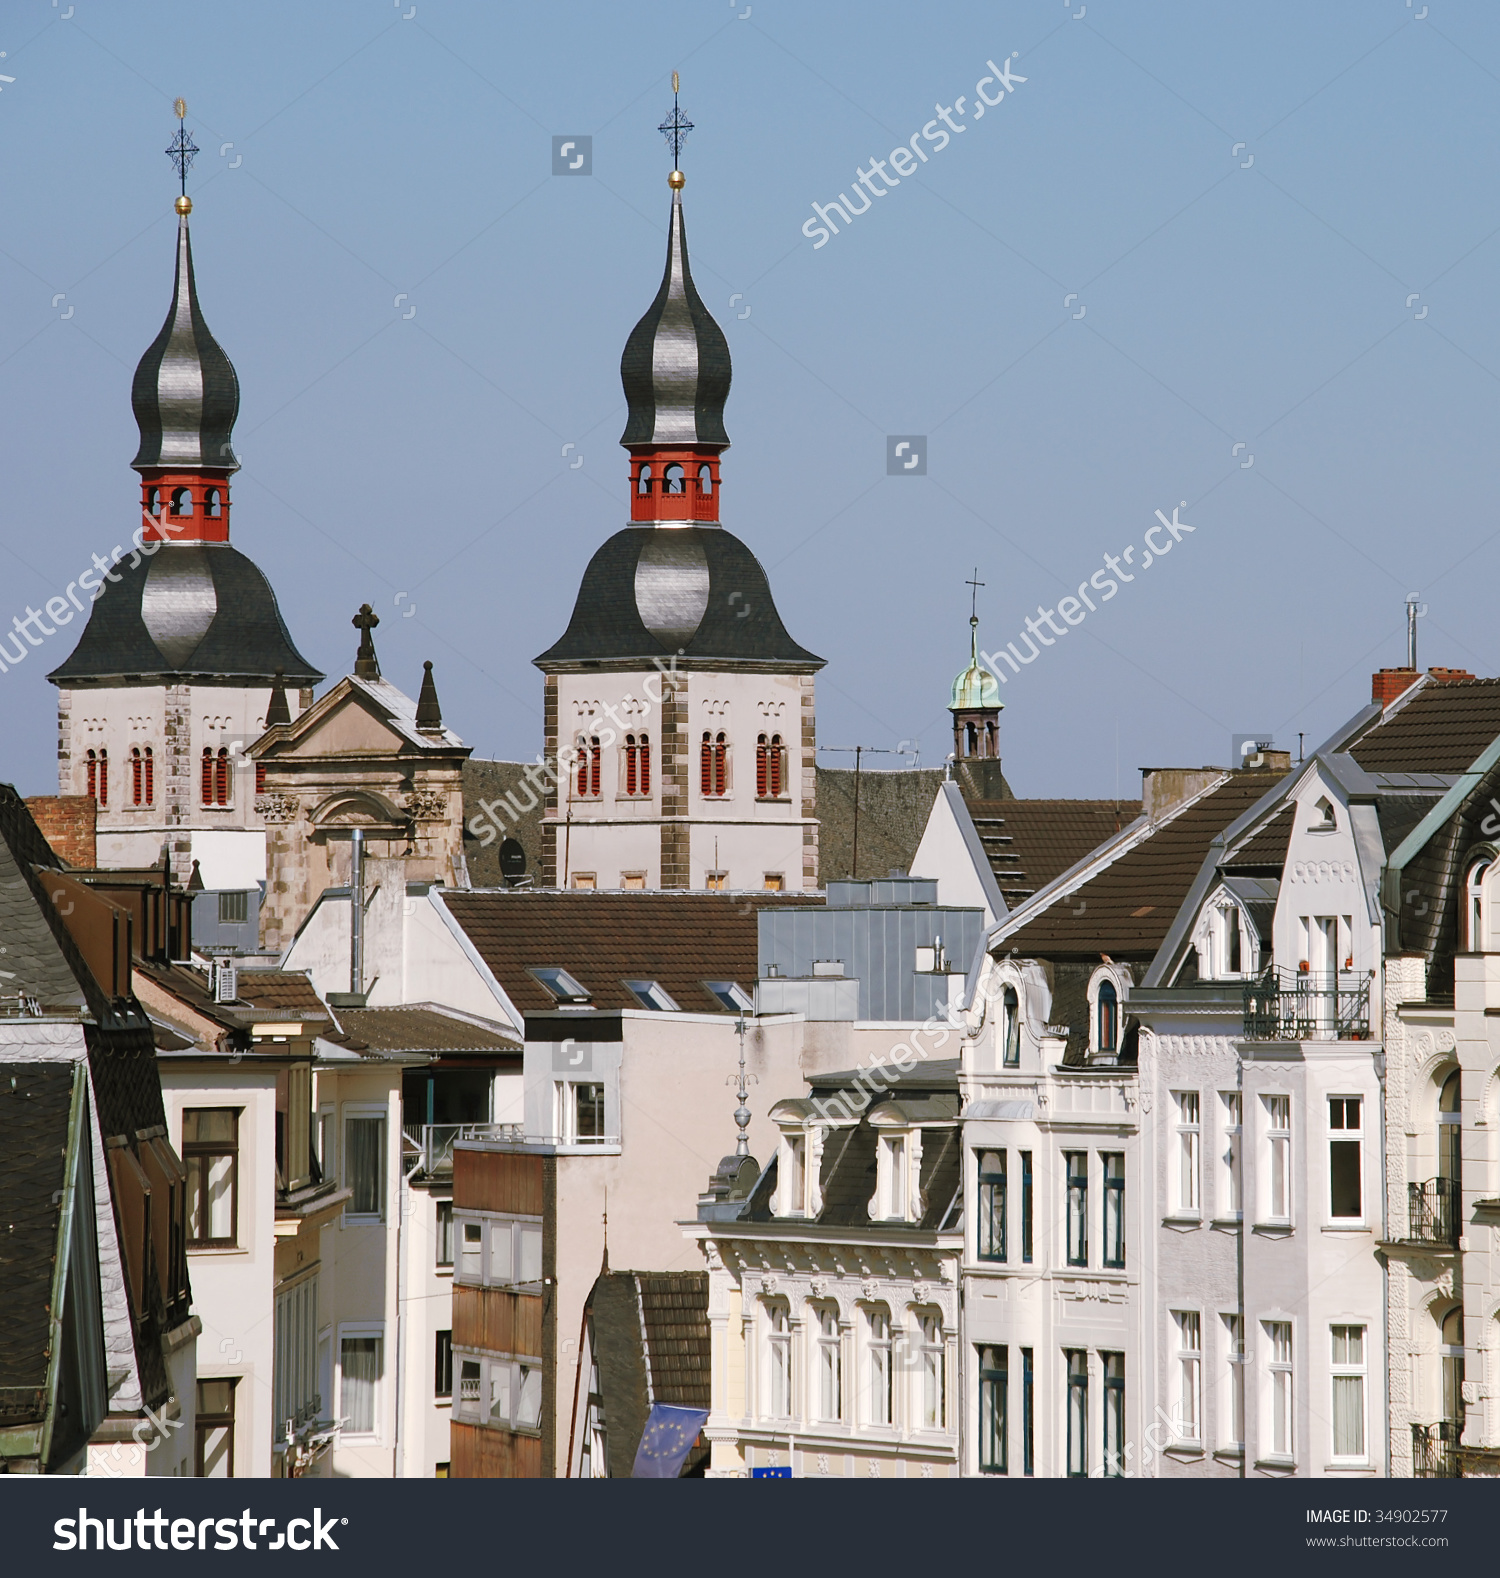 Old City Buildings In The Center Of Bonn, Germany Stock Photo.